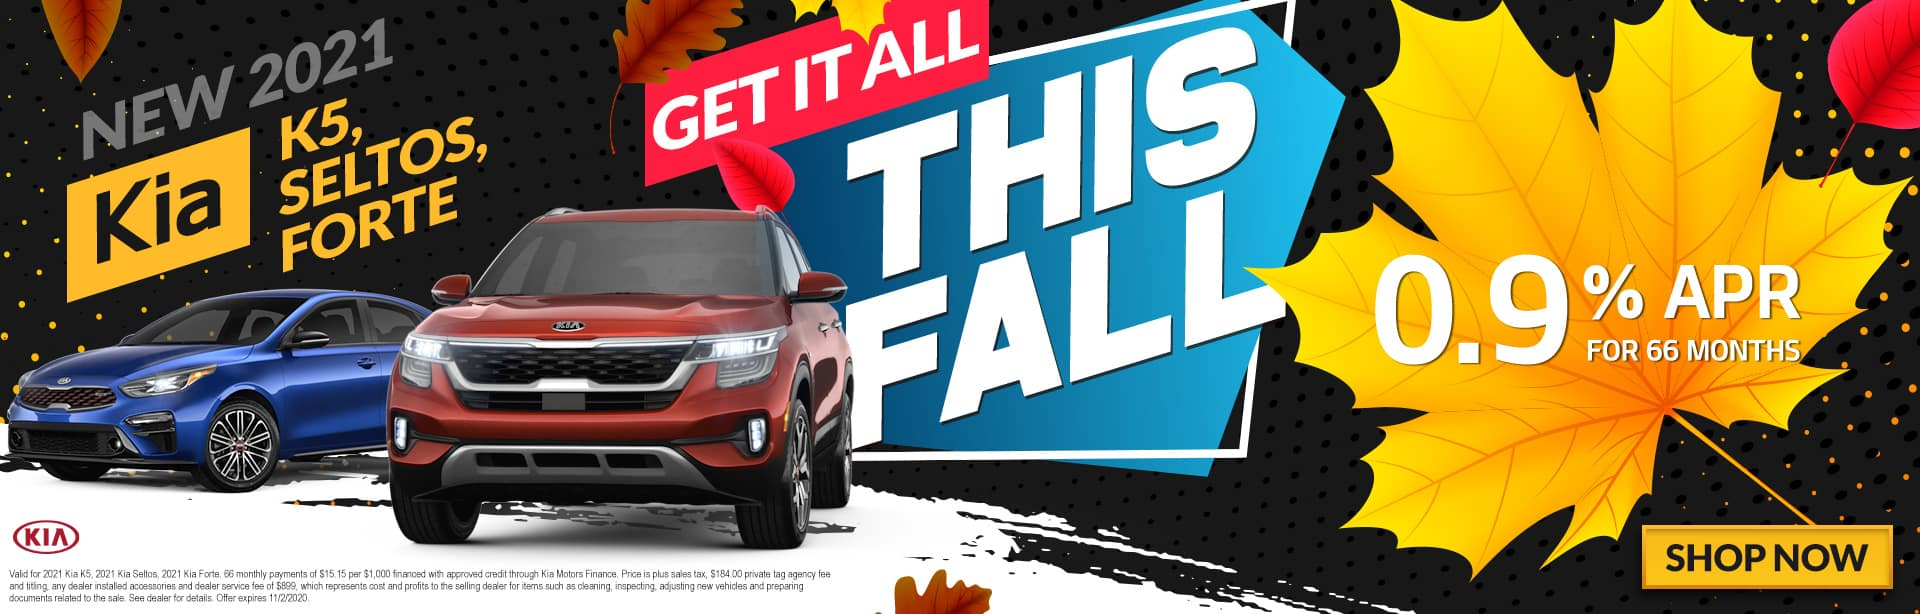 New 2021 Kia K5, Seltos, Forte   Get It All This Fall   0.9% APR For 66 Months